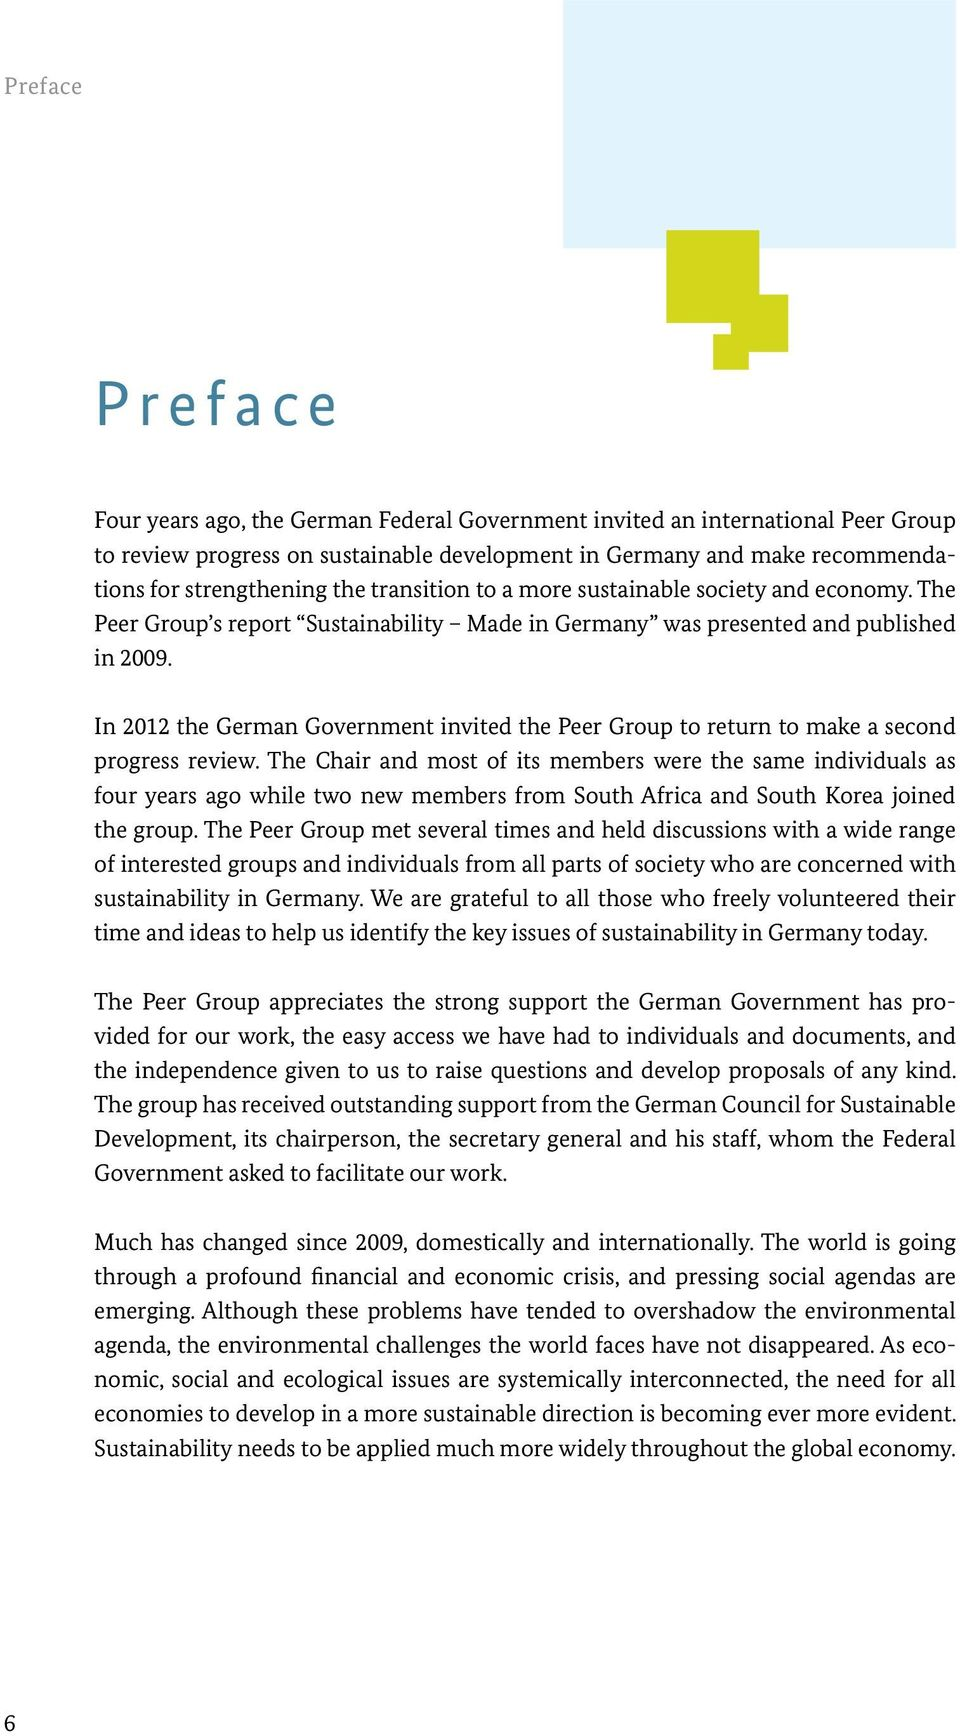 In 2012 the German Government invited the Peer Group to return to make a second progress review.